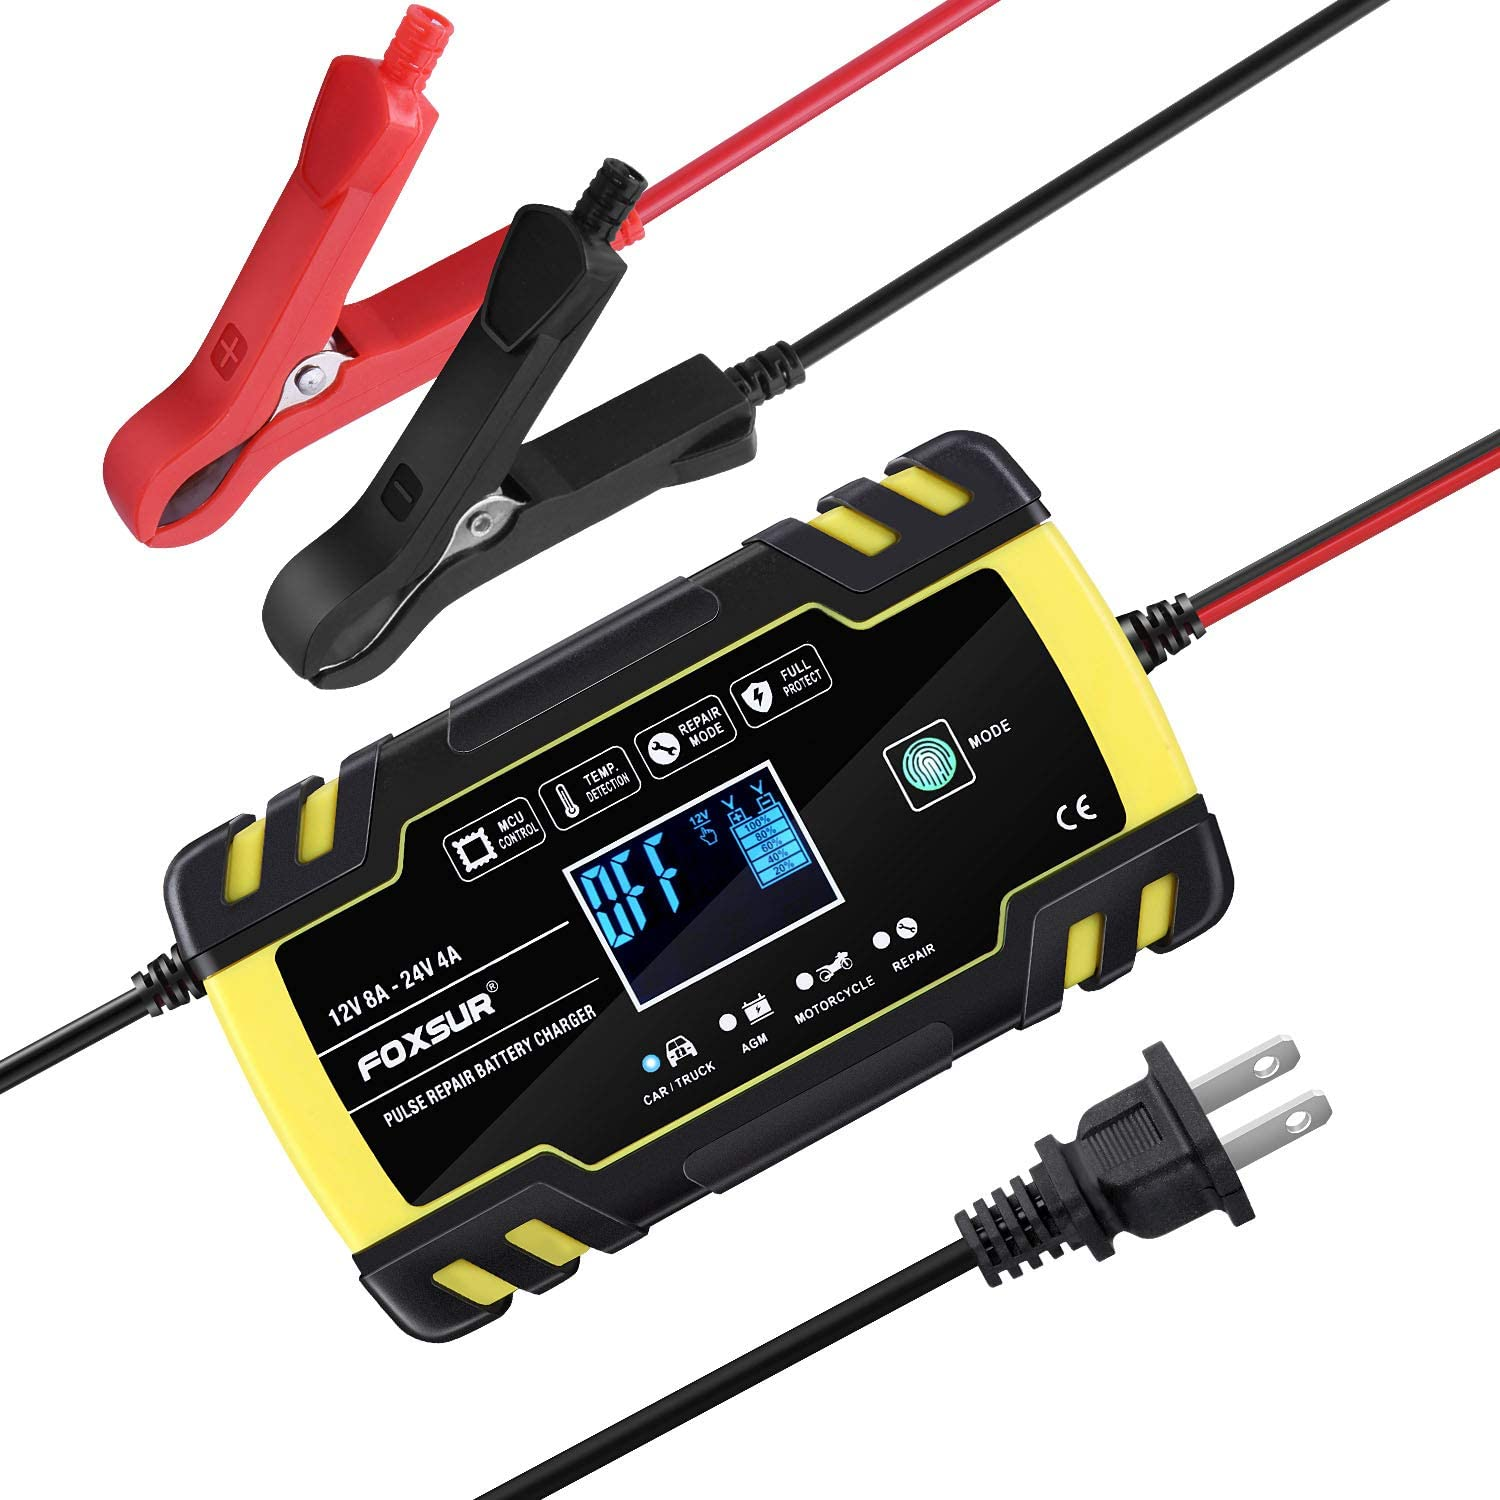 Motorcycle Lead-Acid Truck Lawn Mower LiFePO4 Battery Automatic Car Battery Charger and Maintainer 12V 6A // 24V 3A Lithium Smart 7-Stage LCD Display Automotive Trickle Charger for Car Battery